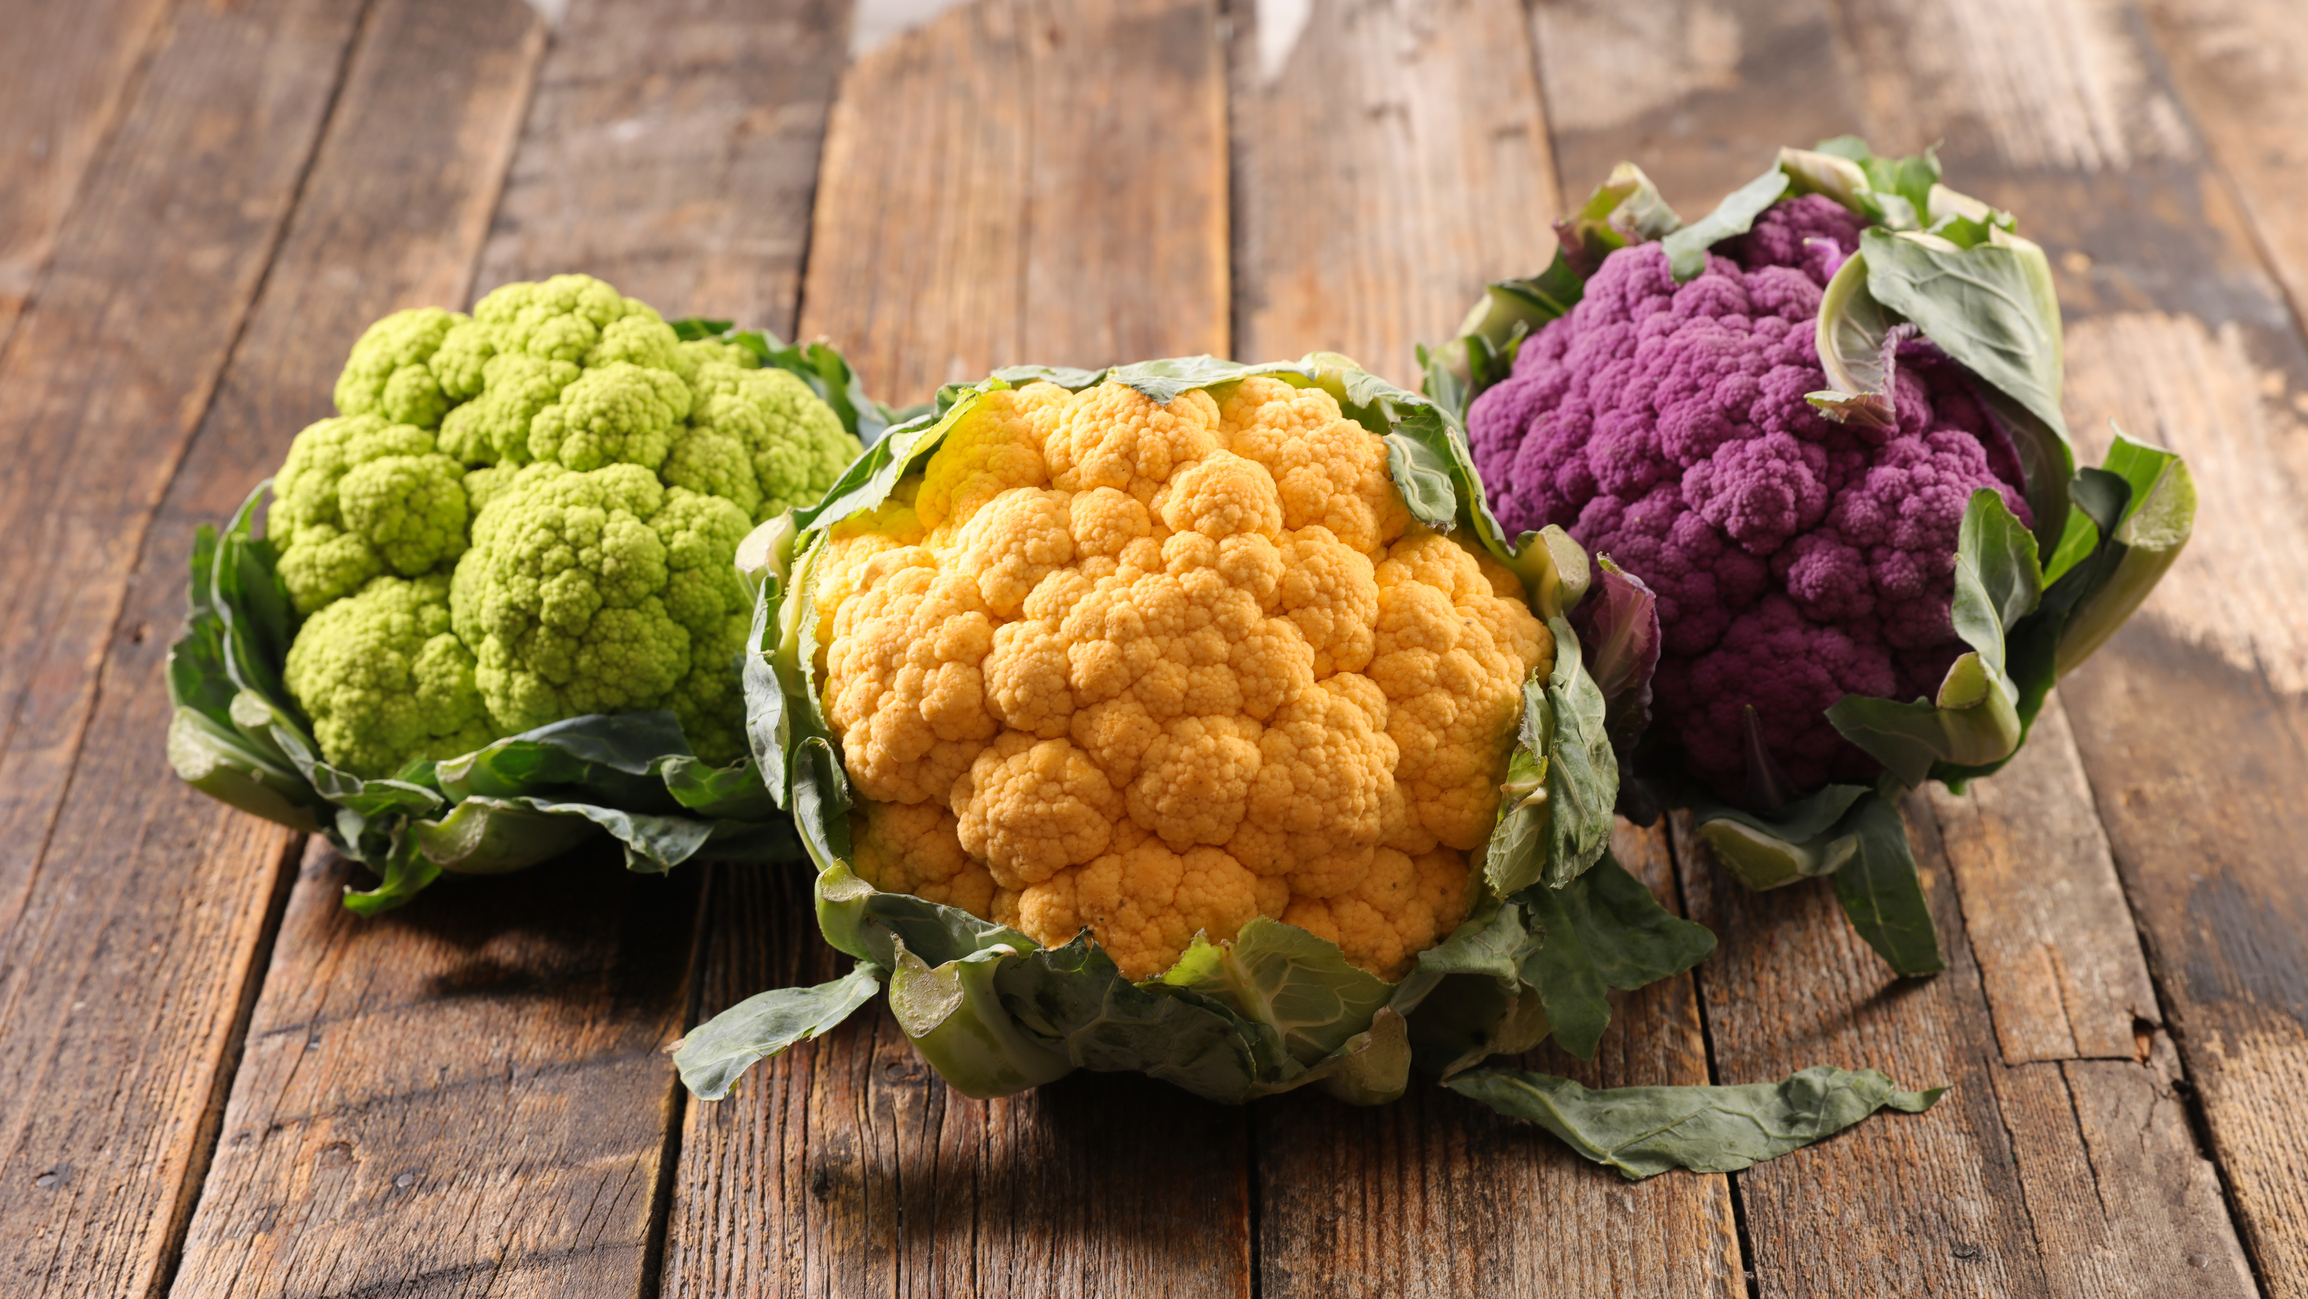 Green, yellow, and purple cauliflower